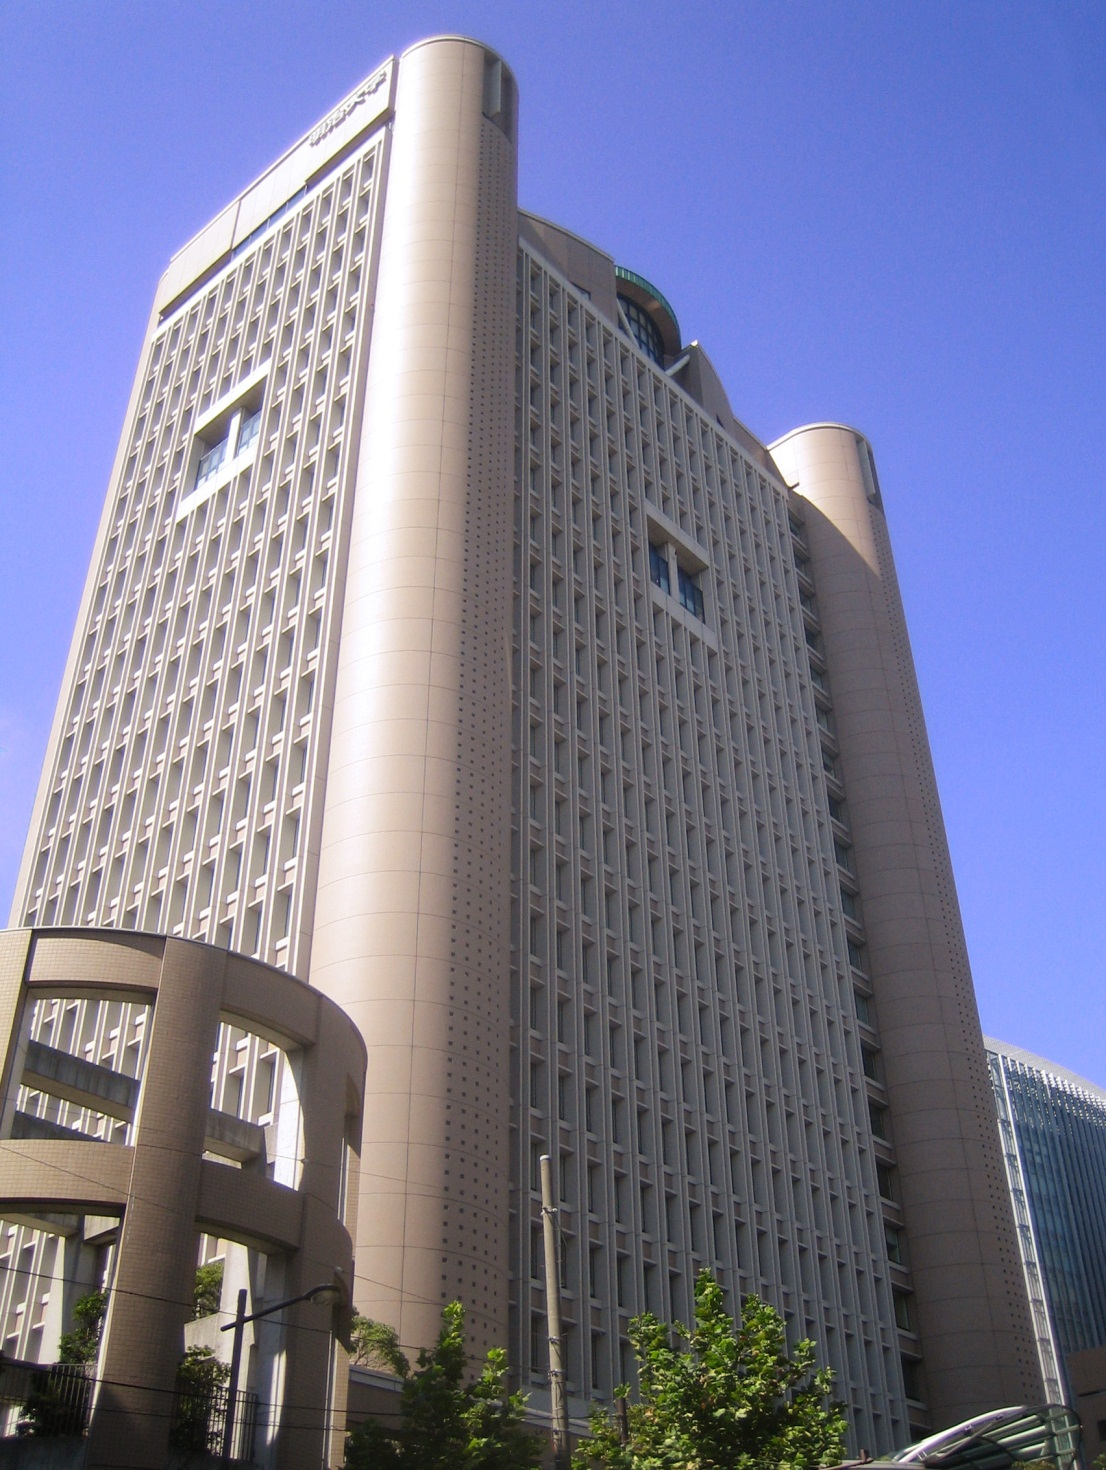 http://upload.wikimedia.org/wikipedia/commons/b/b3/Meiji_University_%28Liberty_Tower%29.jpg